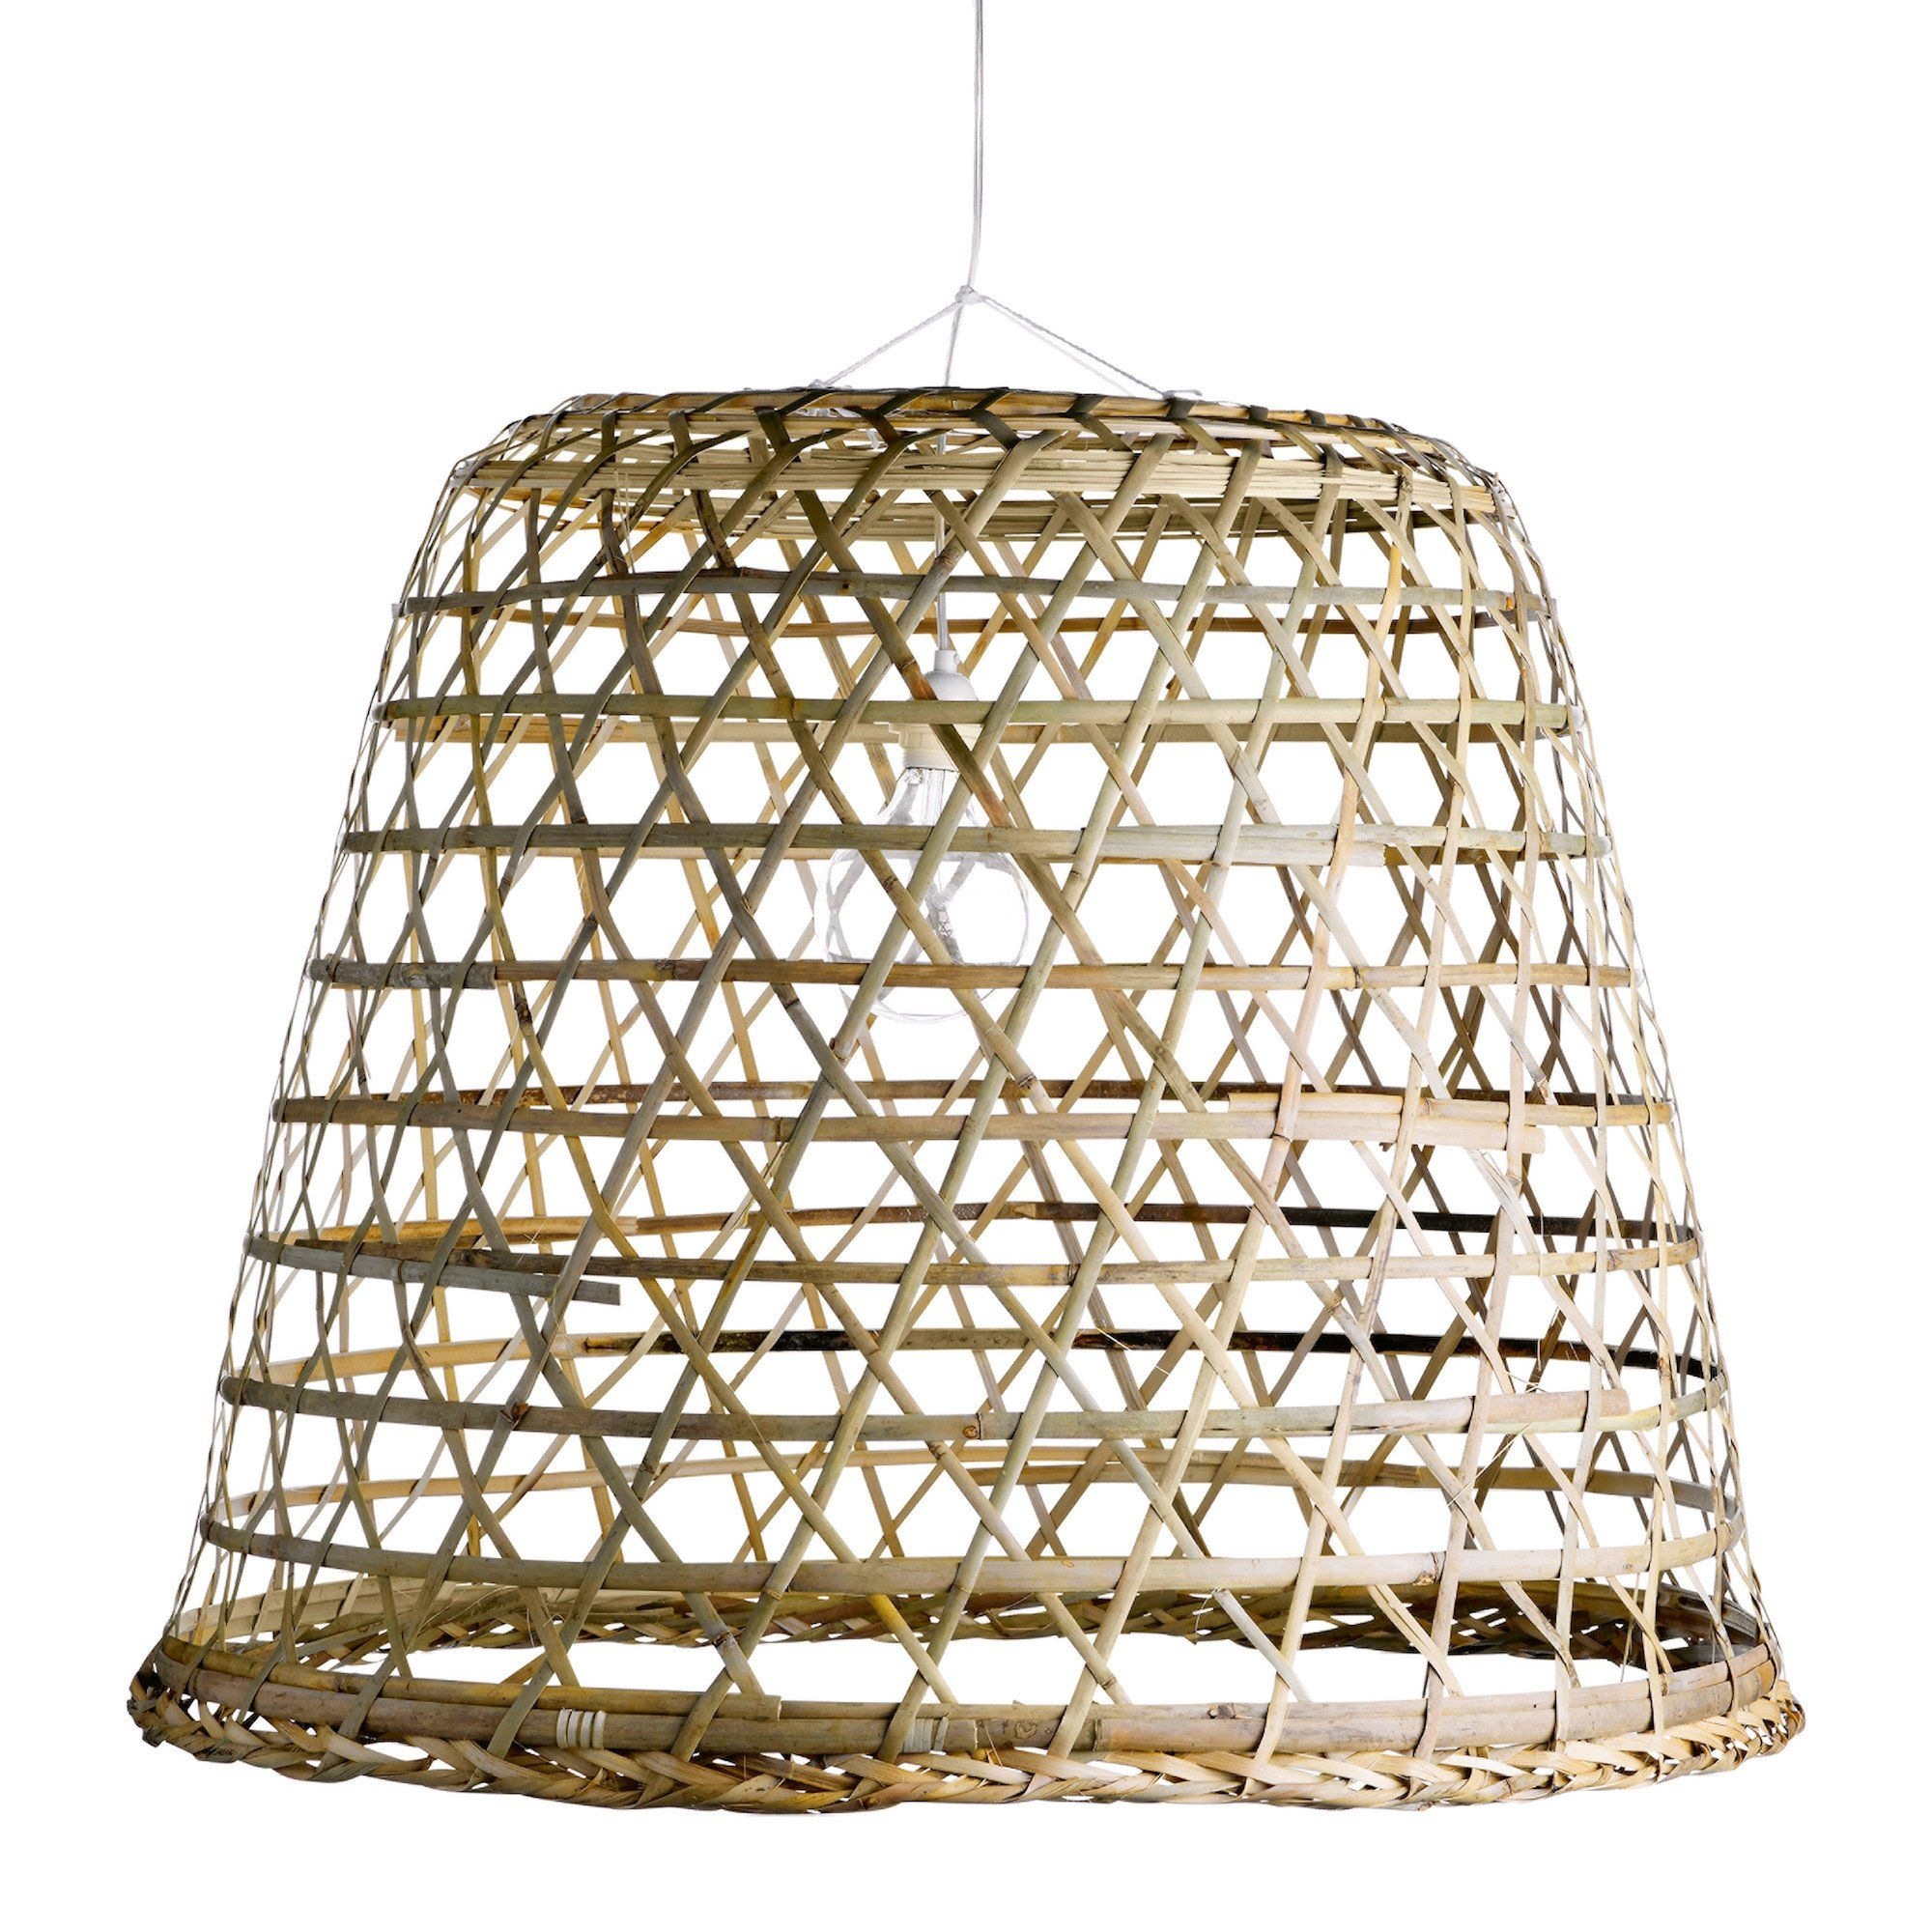 Woven Bamboo Hanging Basket Sika Design Usa Lamp Shade Woven Shades Rustic Lamp Shades